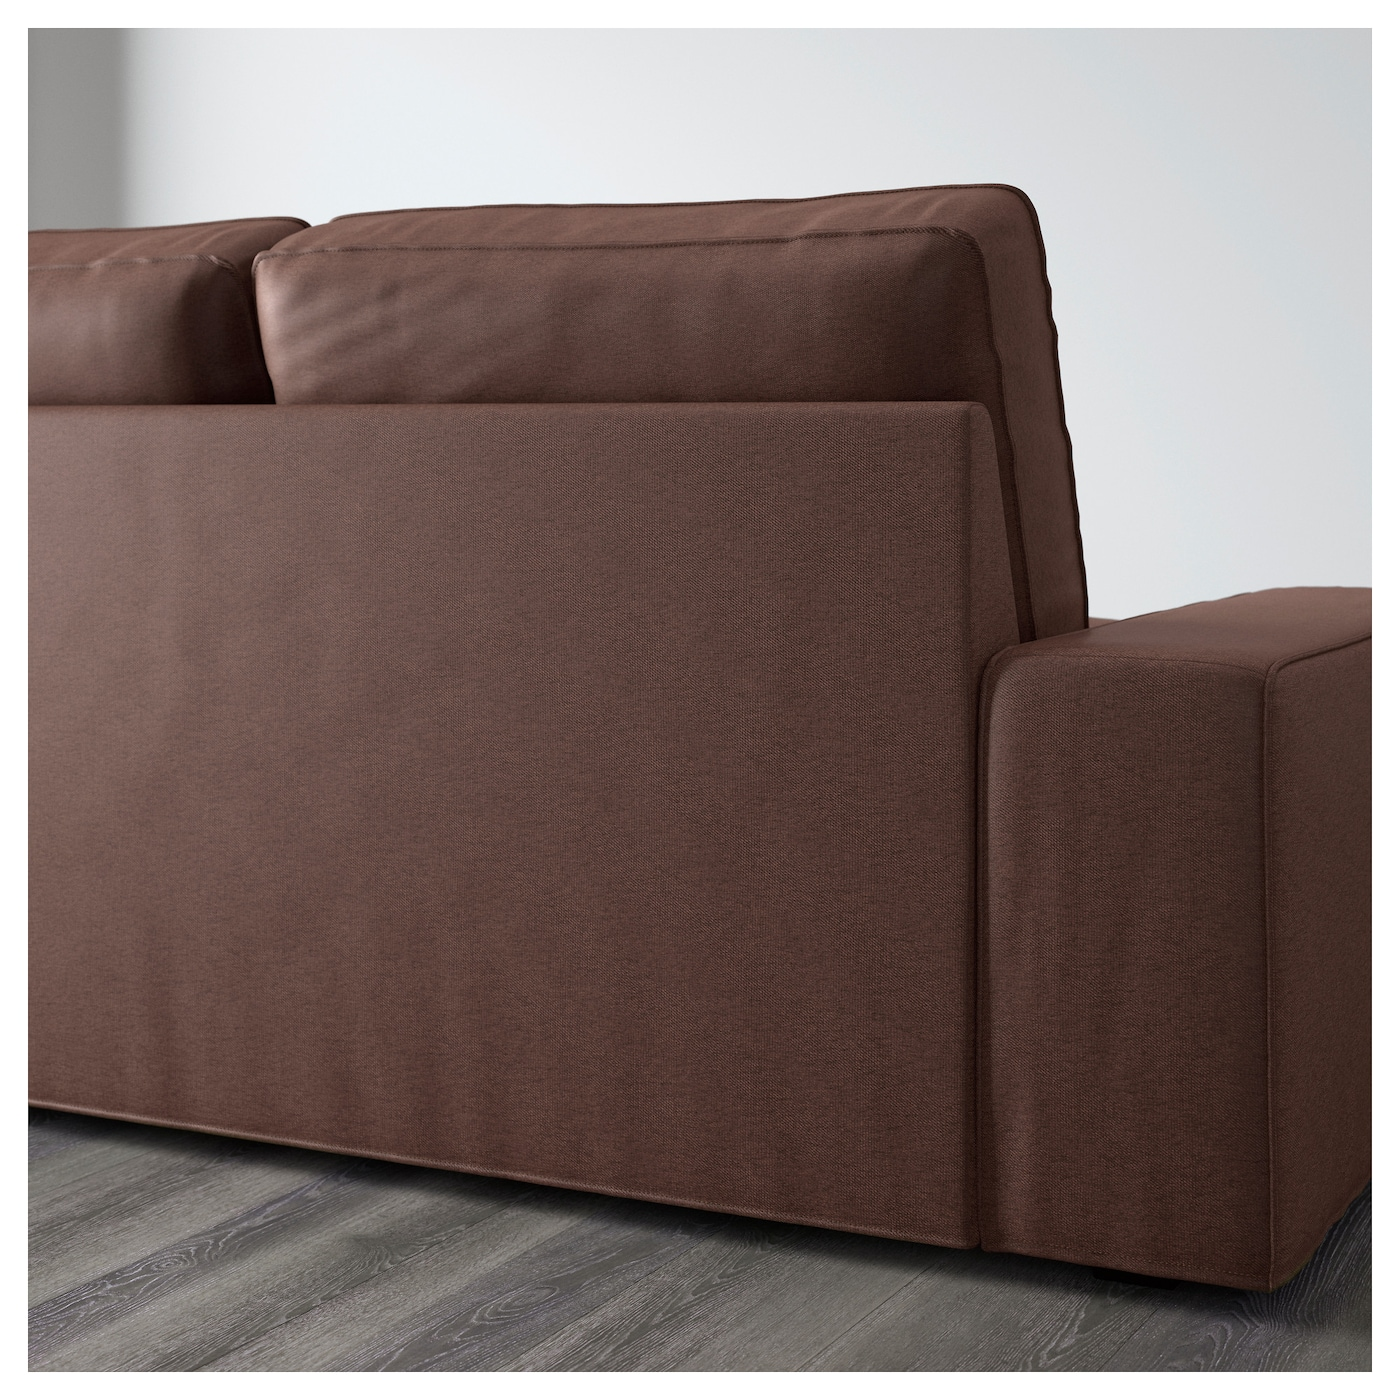 kivik two seat sofa borred dark brown ikea. Black Bedroom Furniture Sets. Home Design Ideas